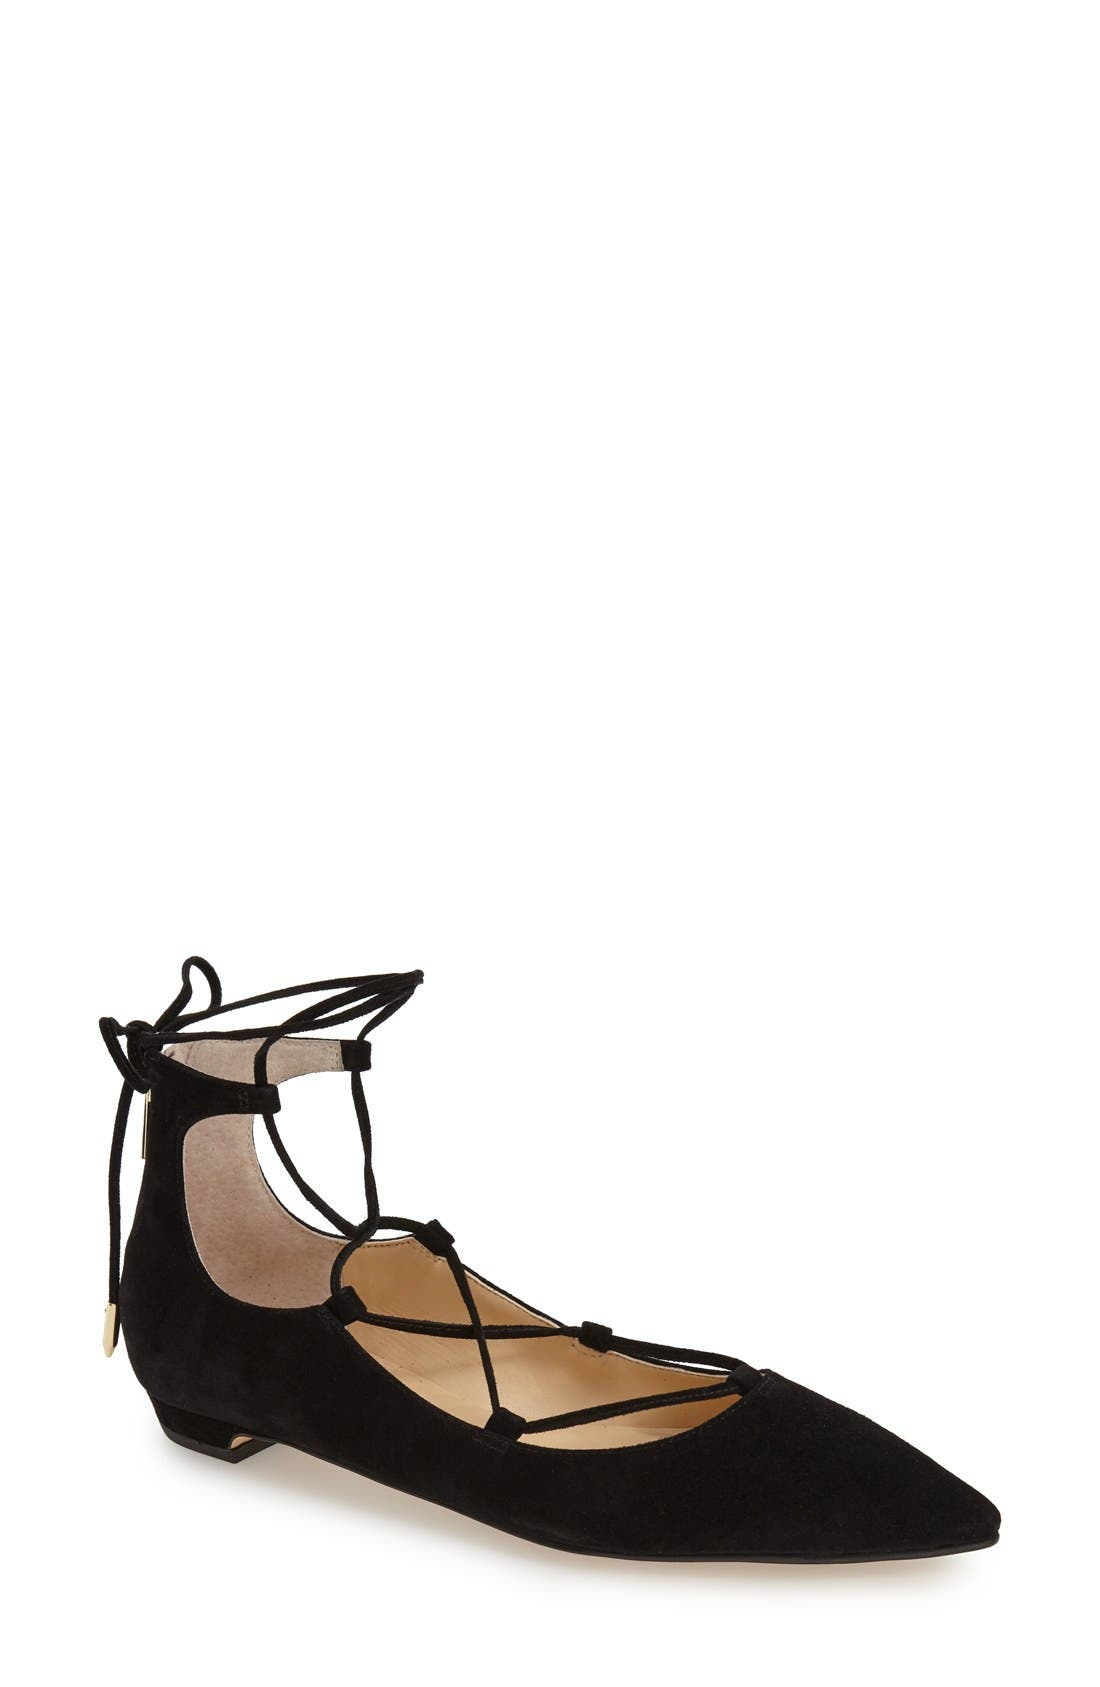 'Tropica' Pointy Toe Ghillie Flat,                         Main,                         color, Black Suede